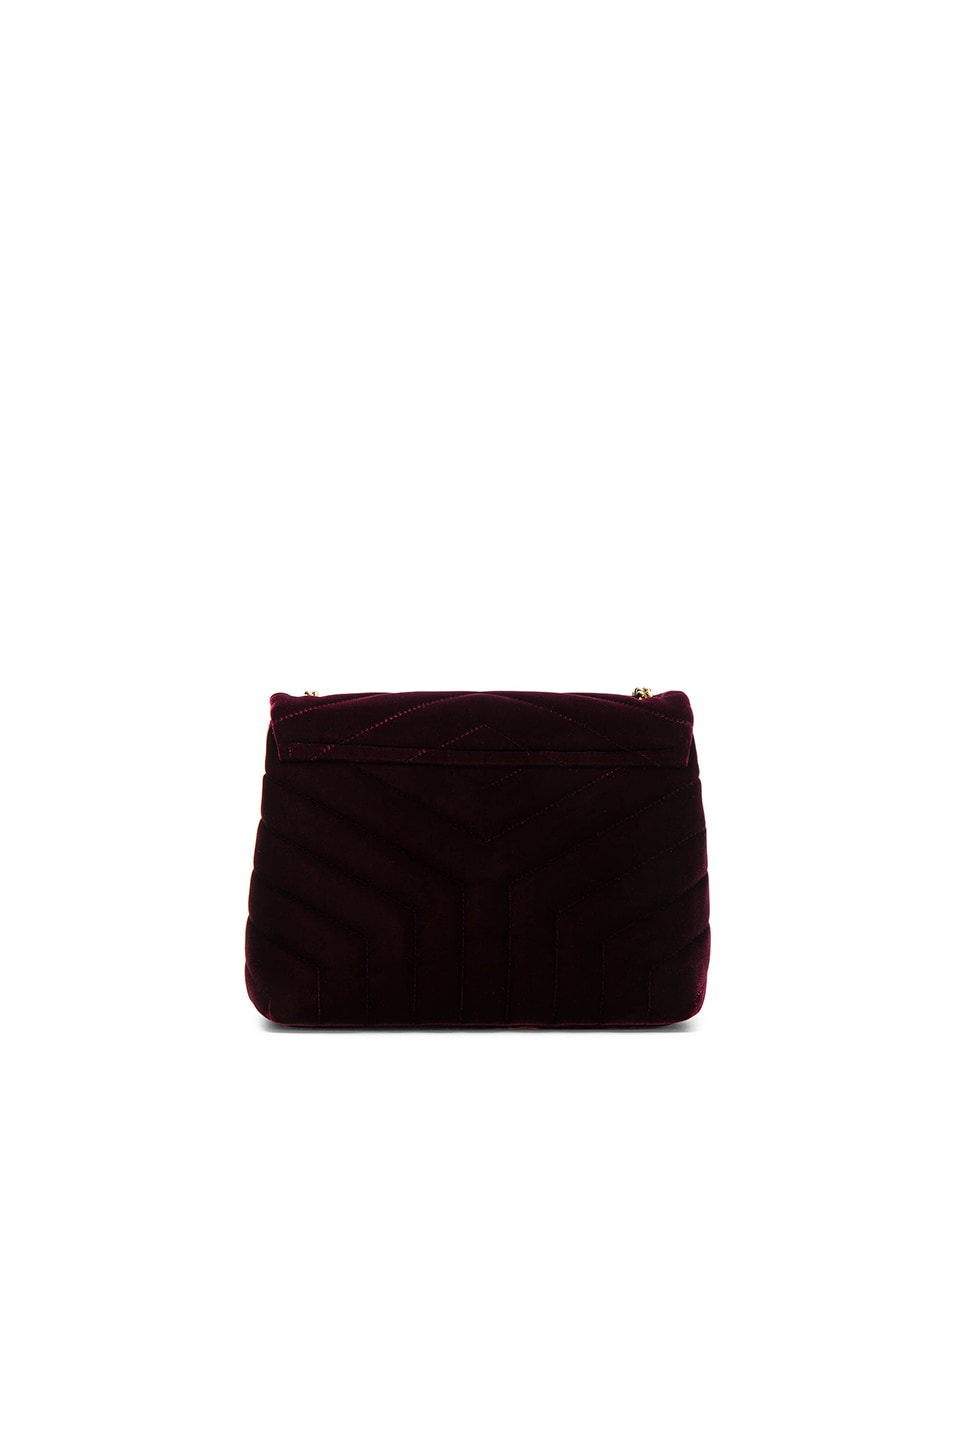 Image 2 of Saint Laurent Small Velvet Monogramme Loulou Chain Bag in French Burgundy